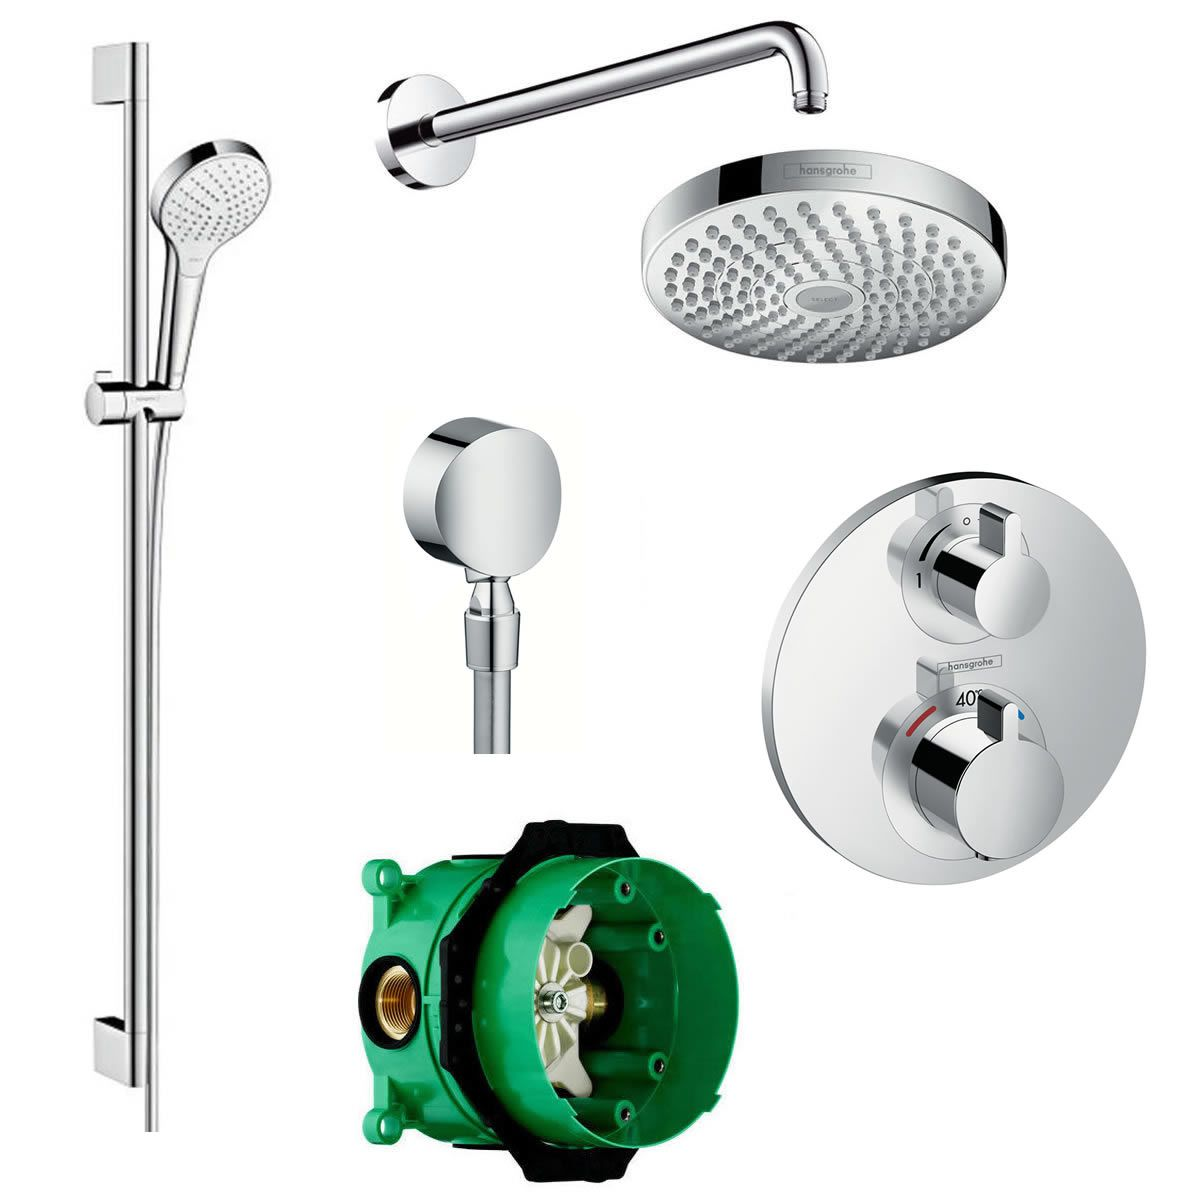 Hansgrohe Round Ecostat Valve With Raindance 180 Overhead Shower And Croma Select Rail Kit